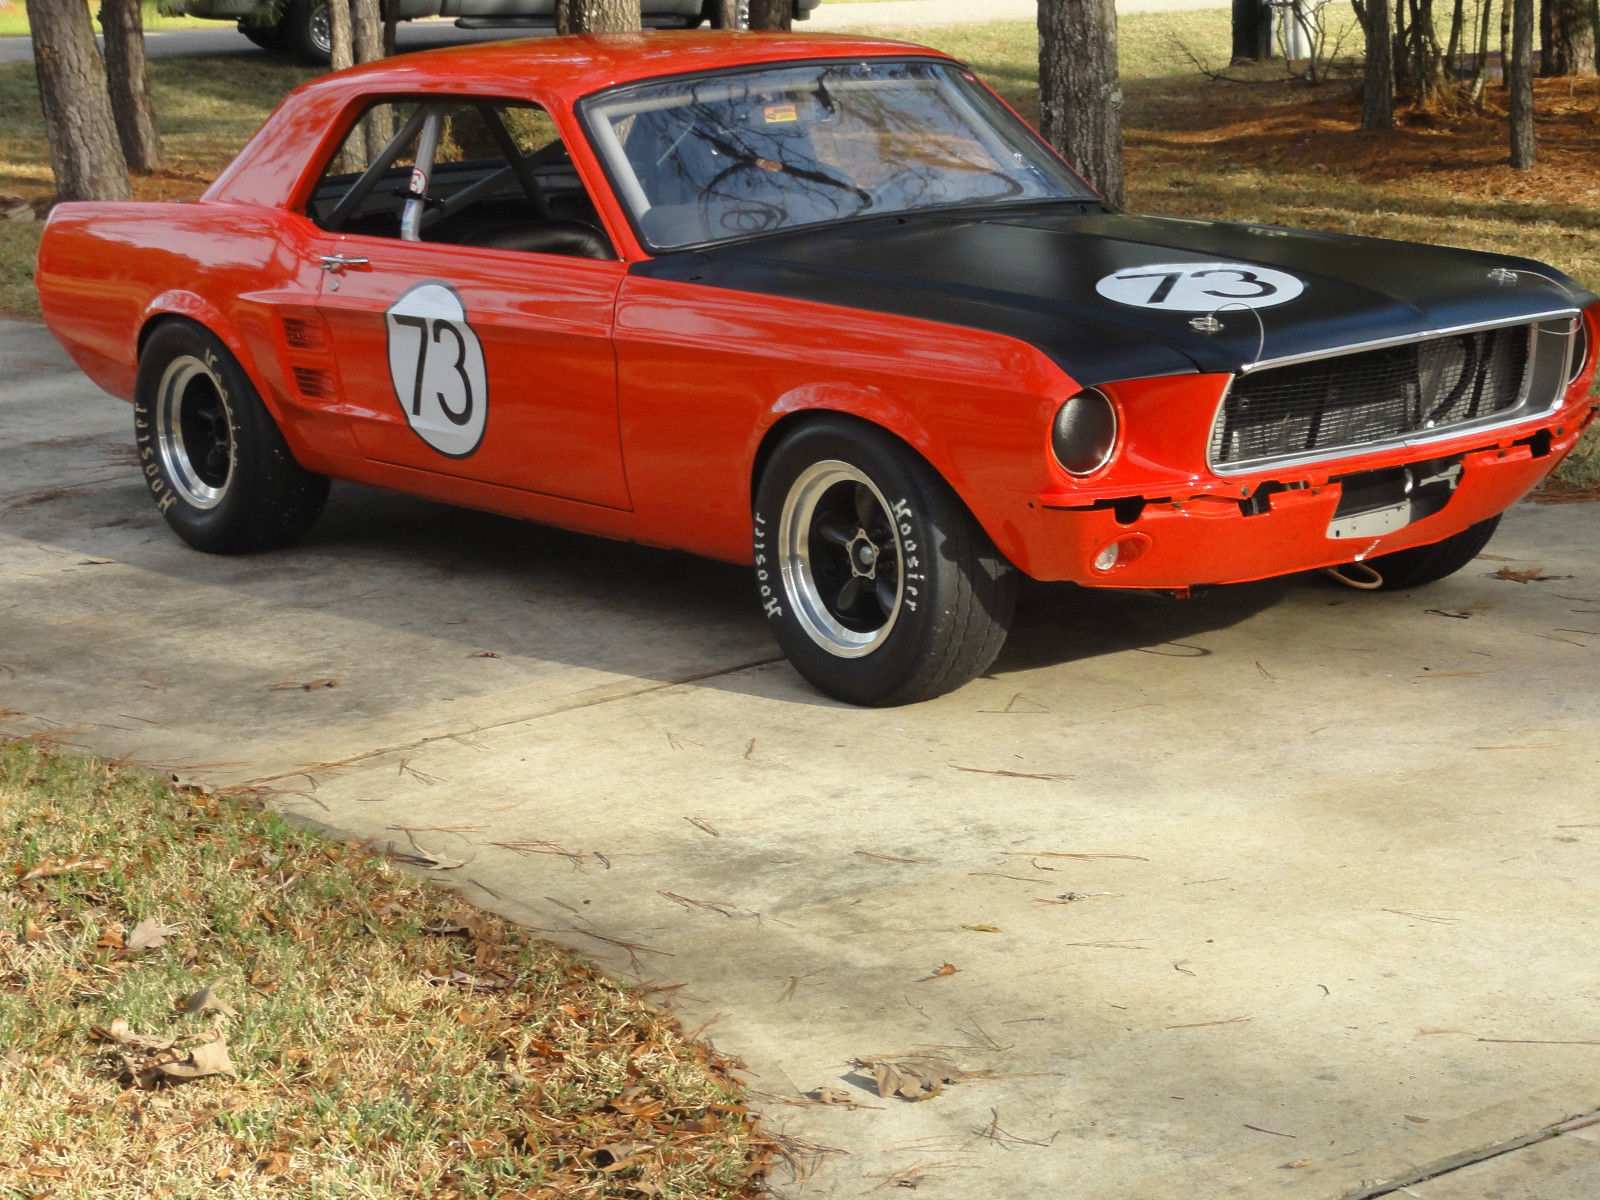 1967 ford mustang vintage race car svra cvar rmvr road race open track etc - Ford mustang vintage ...